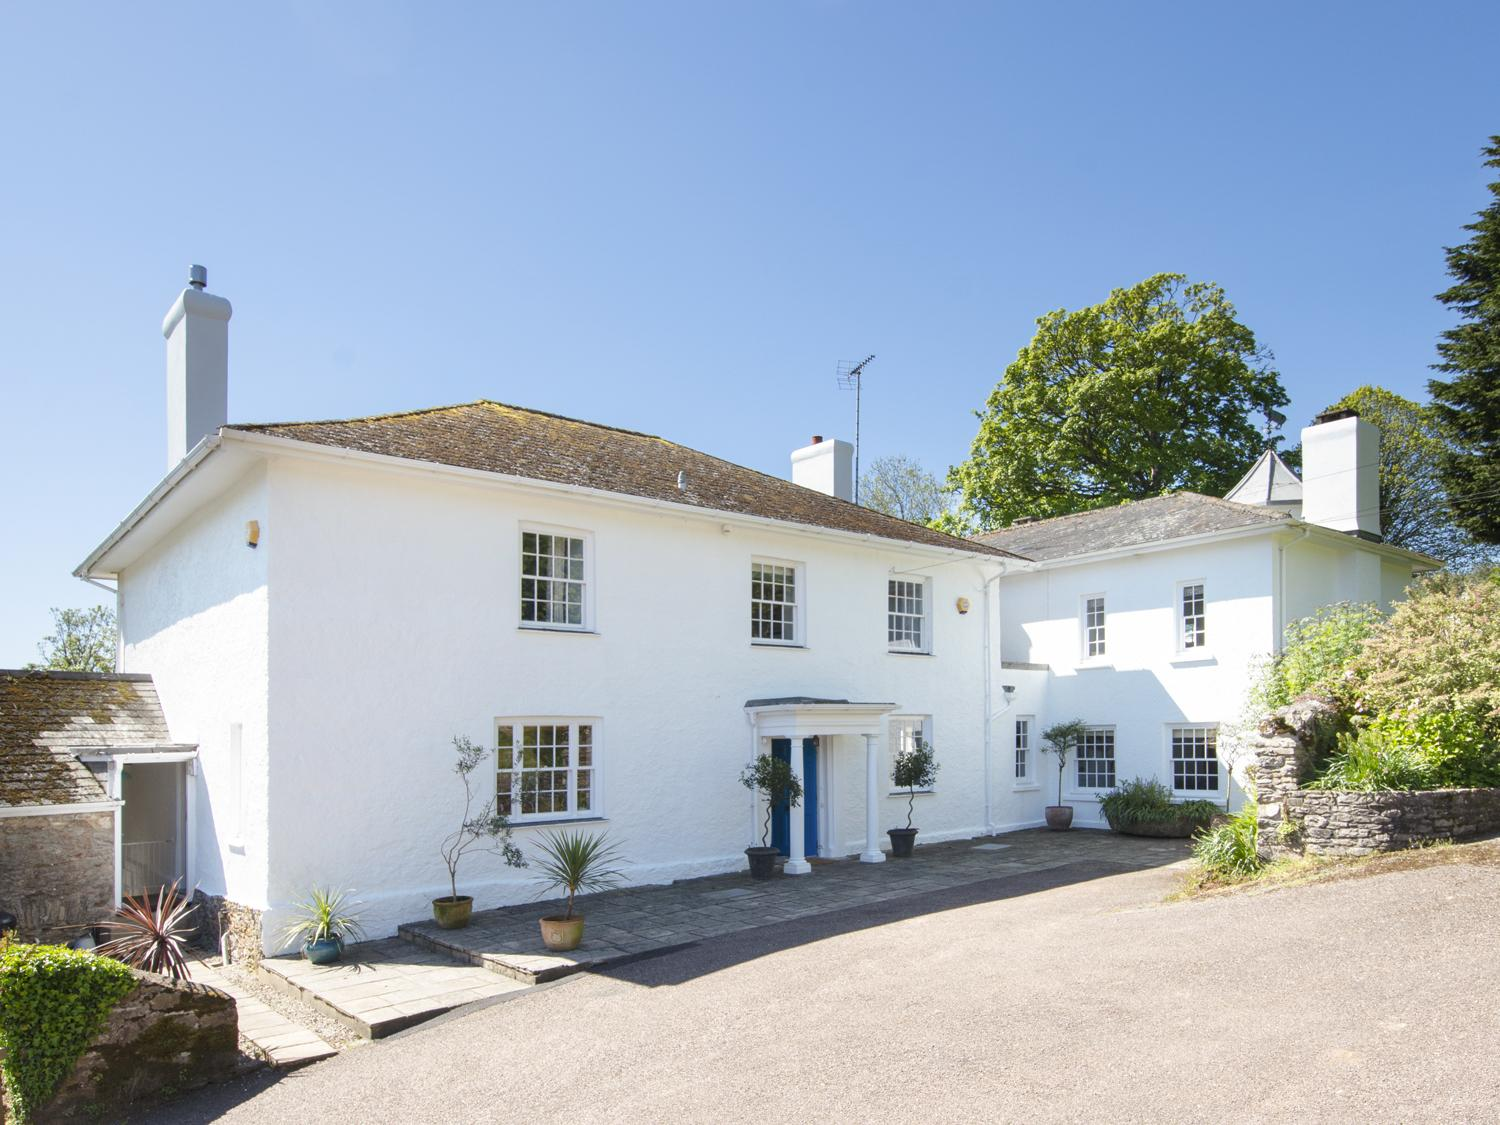 Holiday Cottage Reviews for Sandridge Barton - Holiday Cottage in Stoke Gabriel, Devon